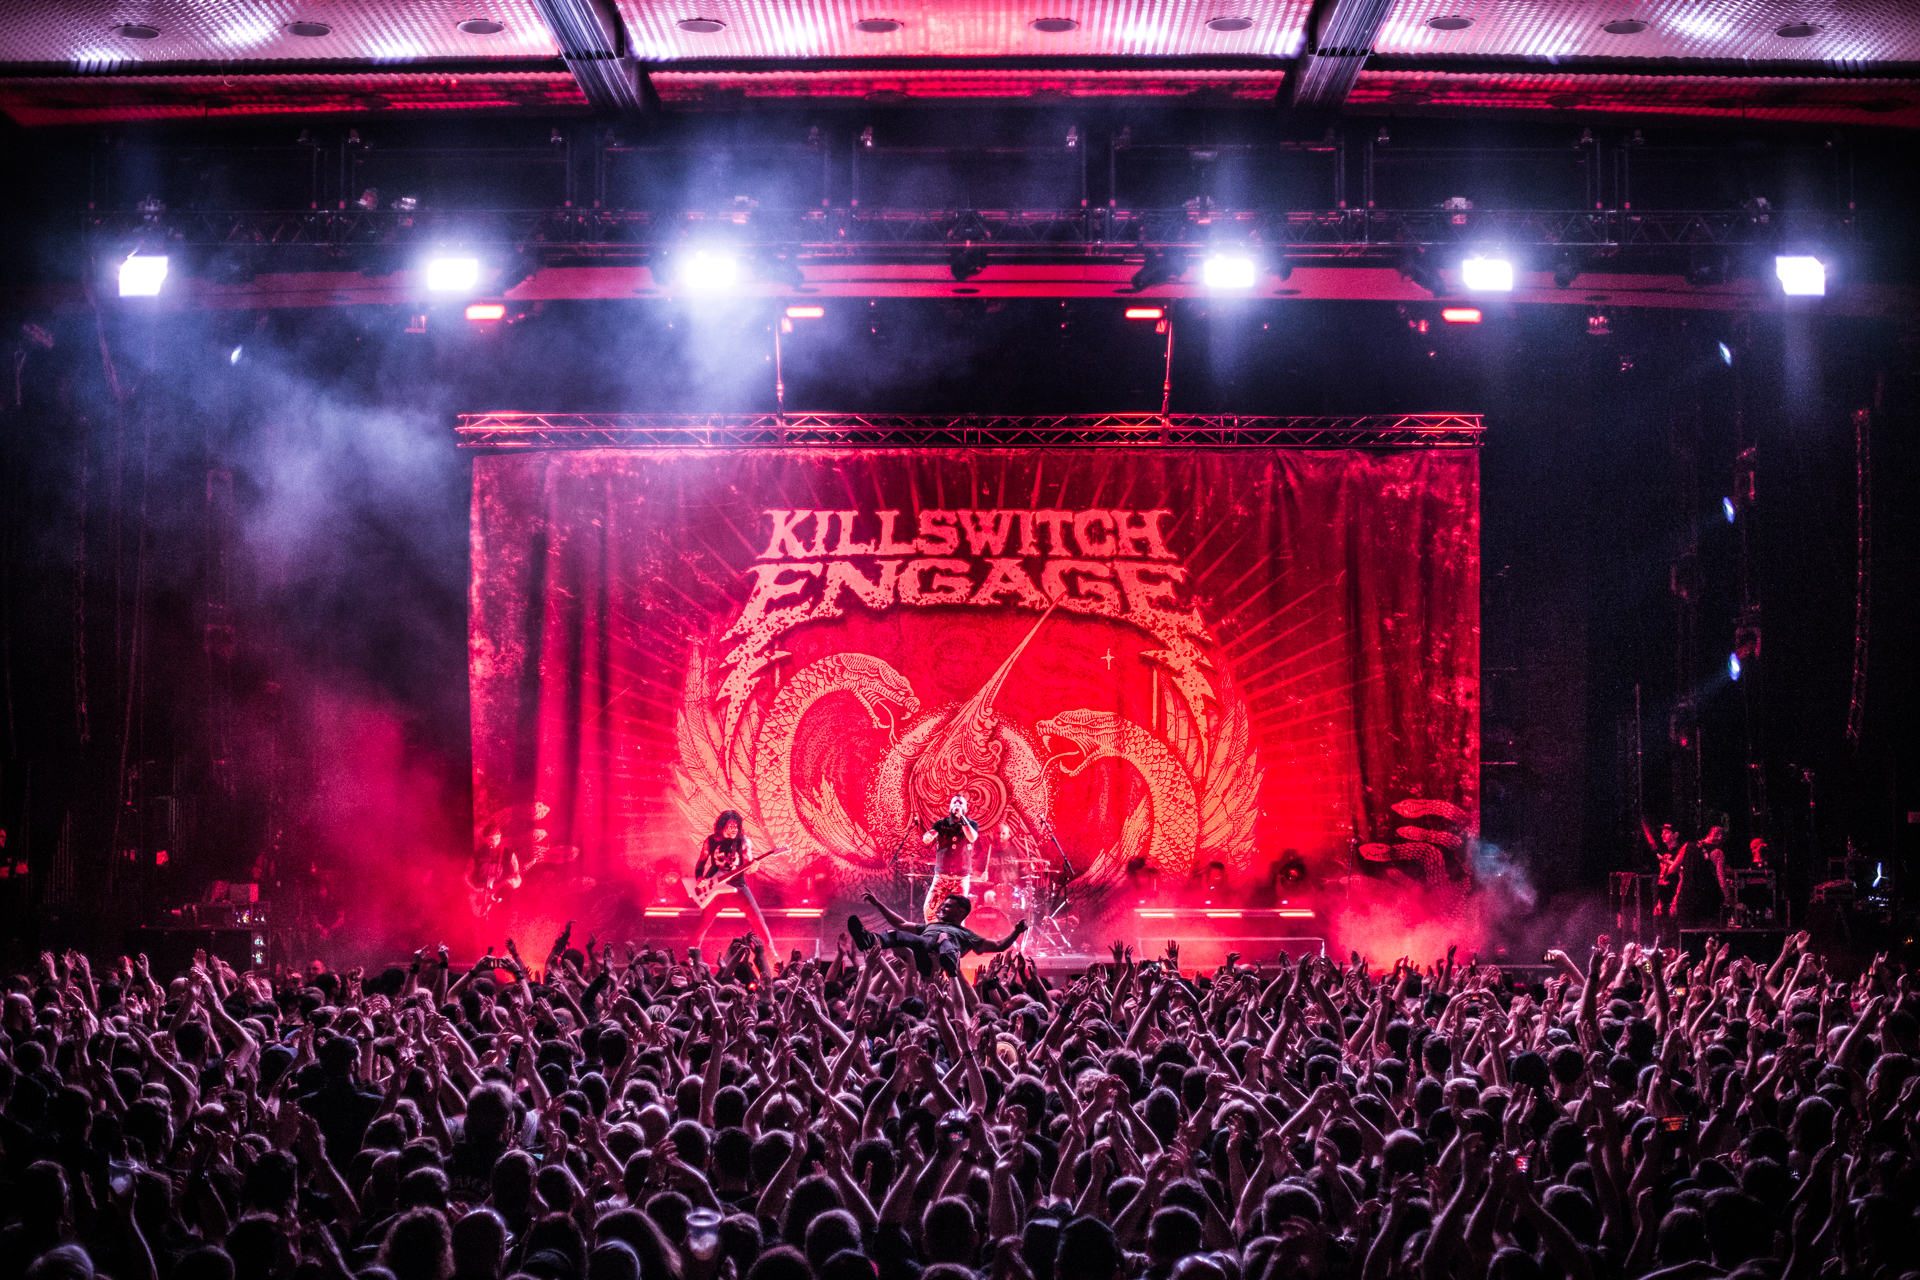 KILLSWITCH ENGAGE on REVERENCE tour - Vincent Grundke